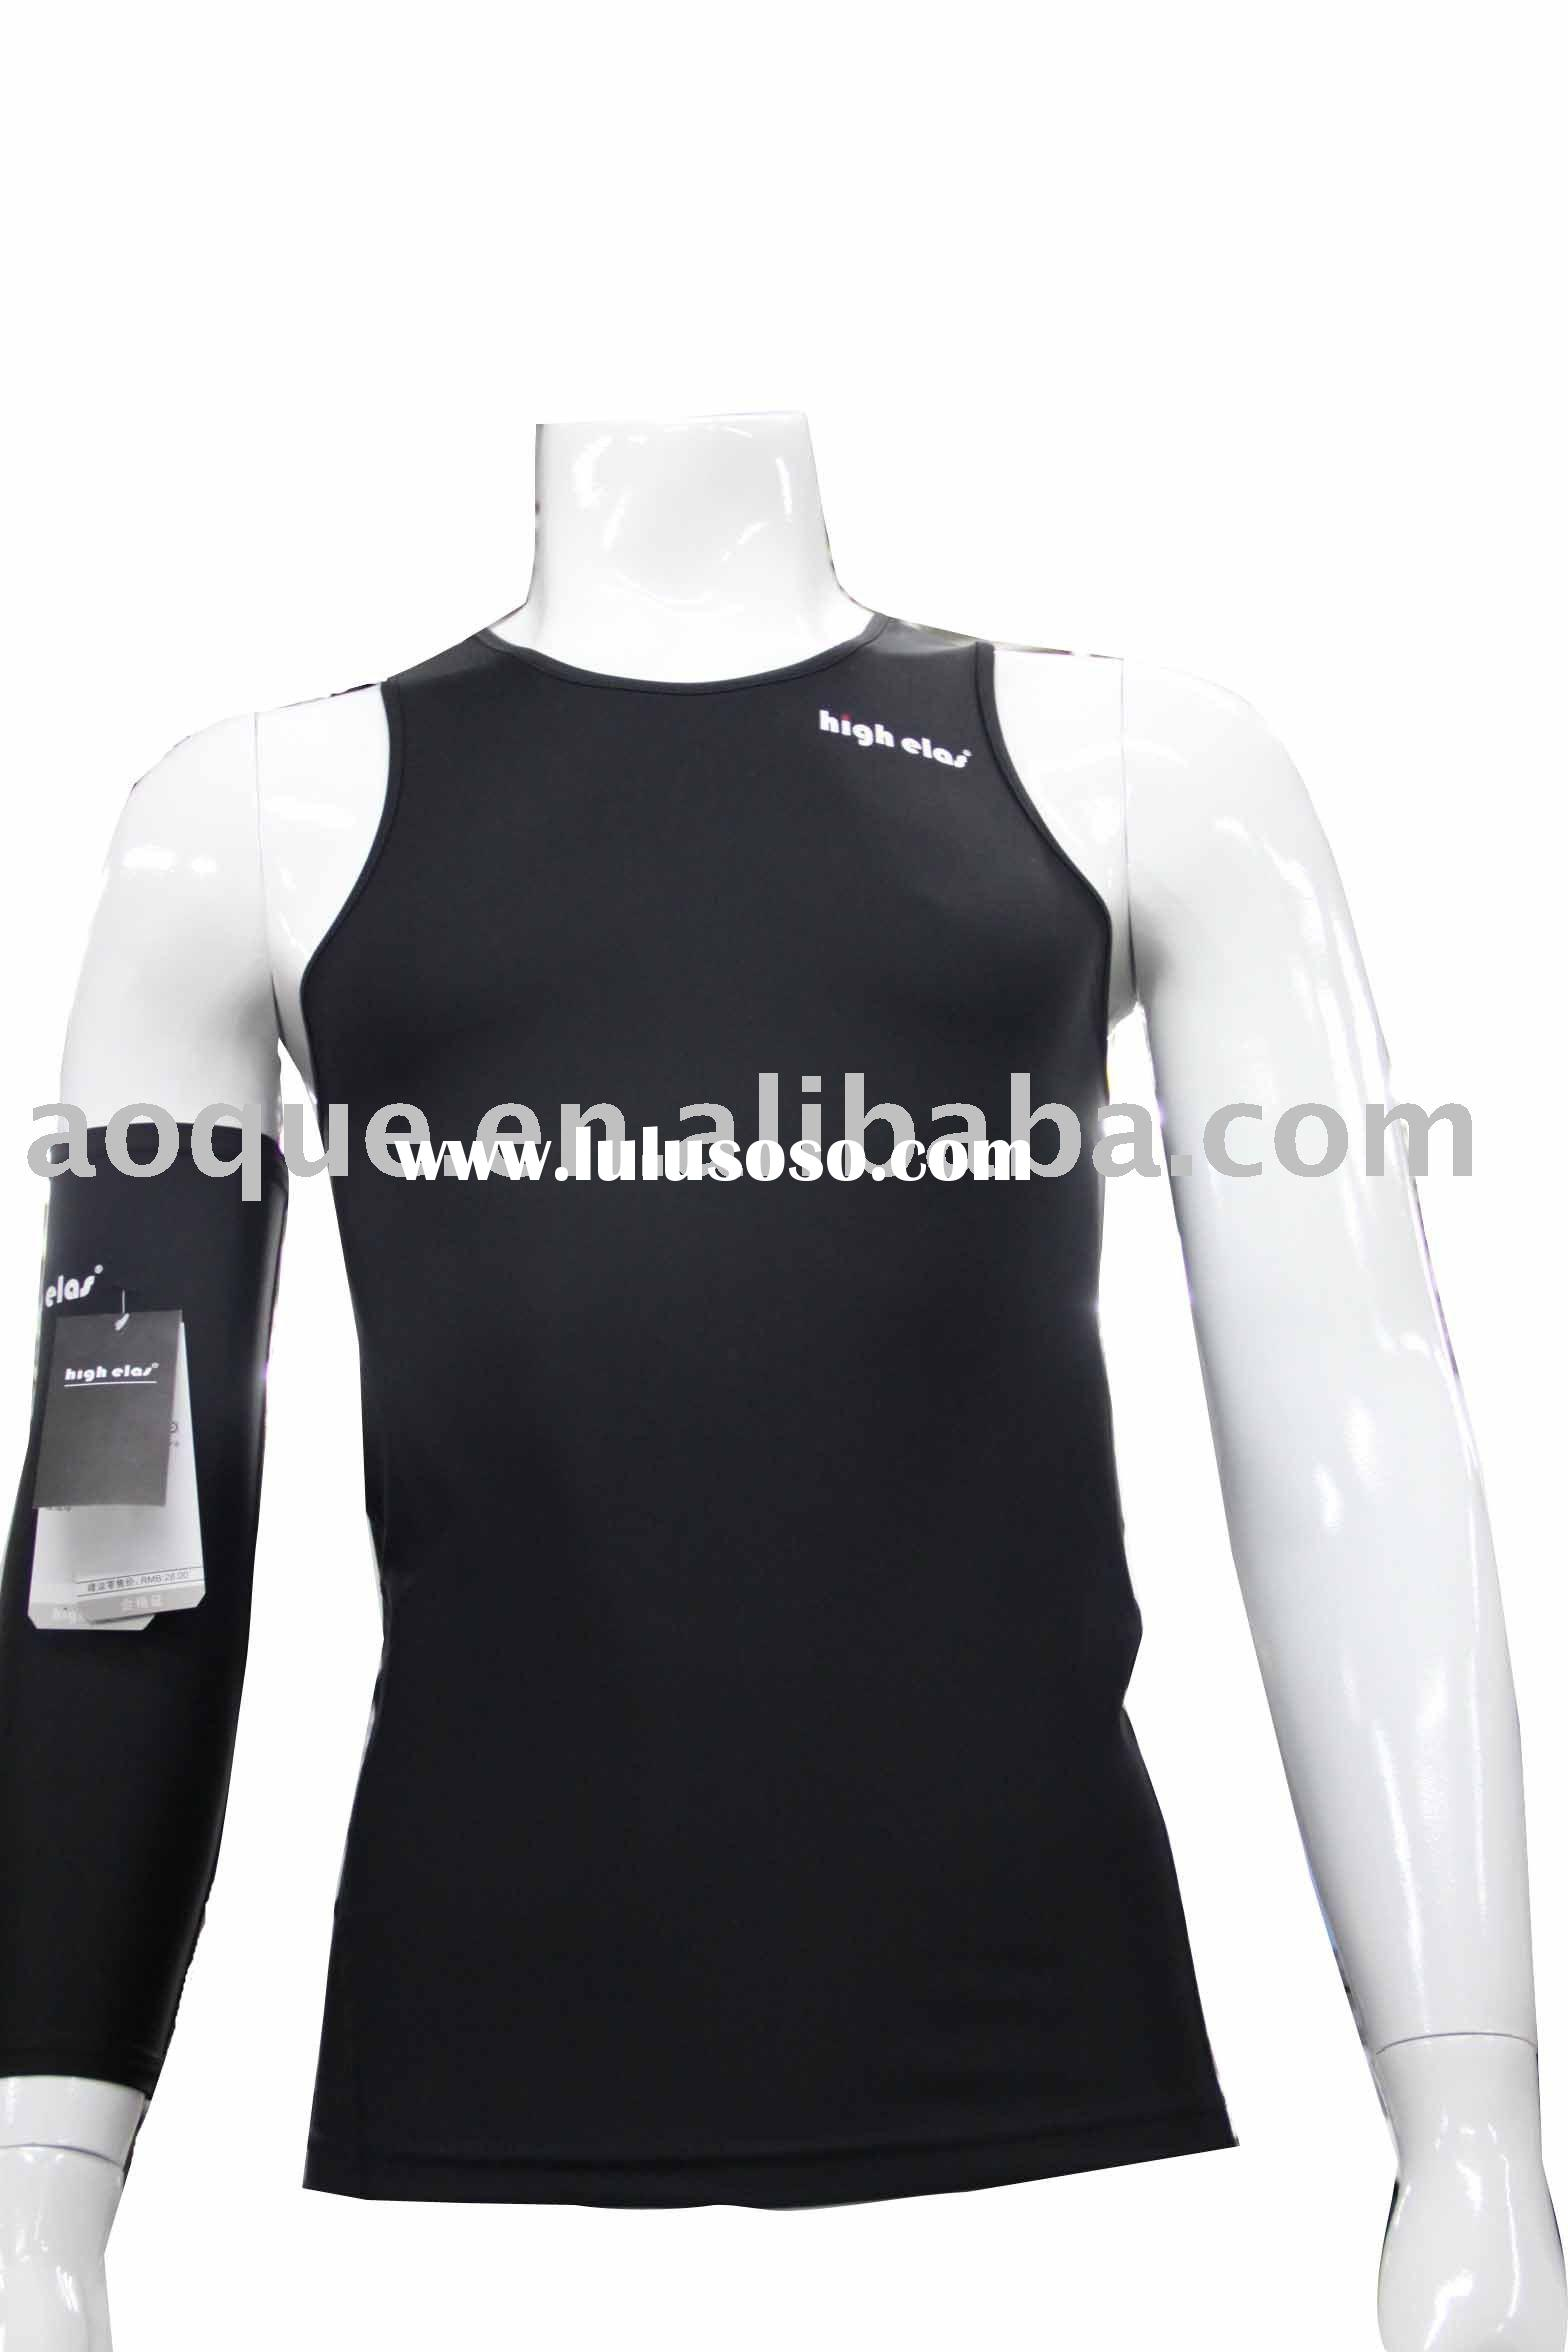 dry fit   jogging or training wear